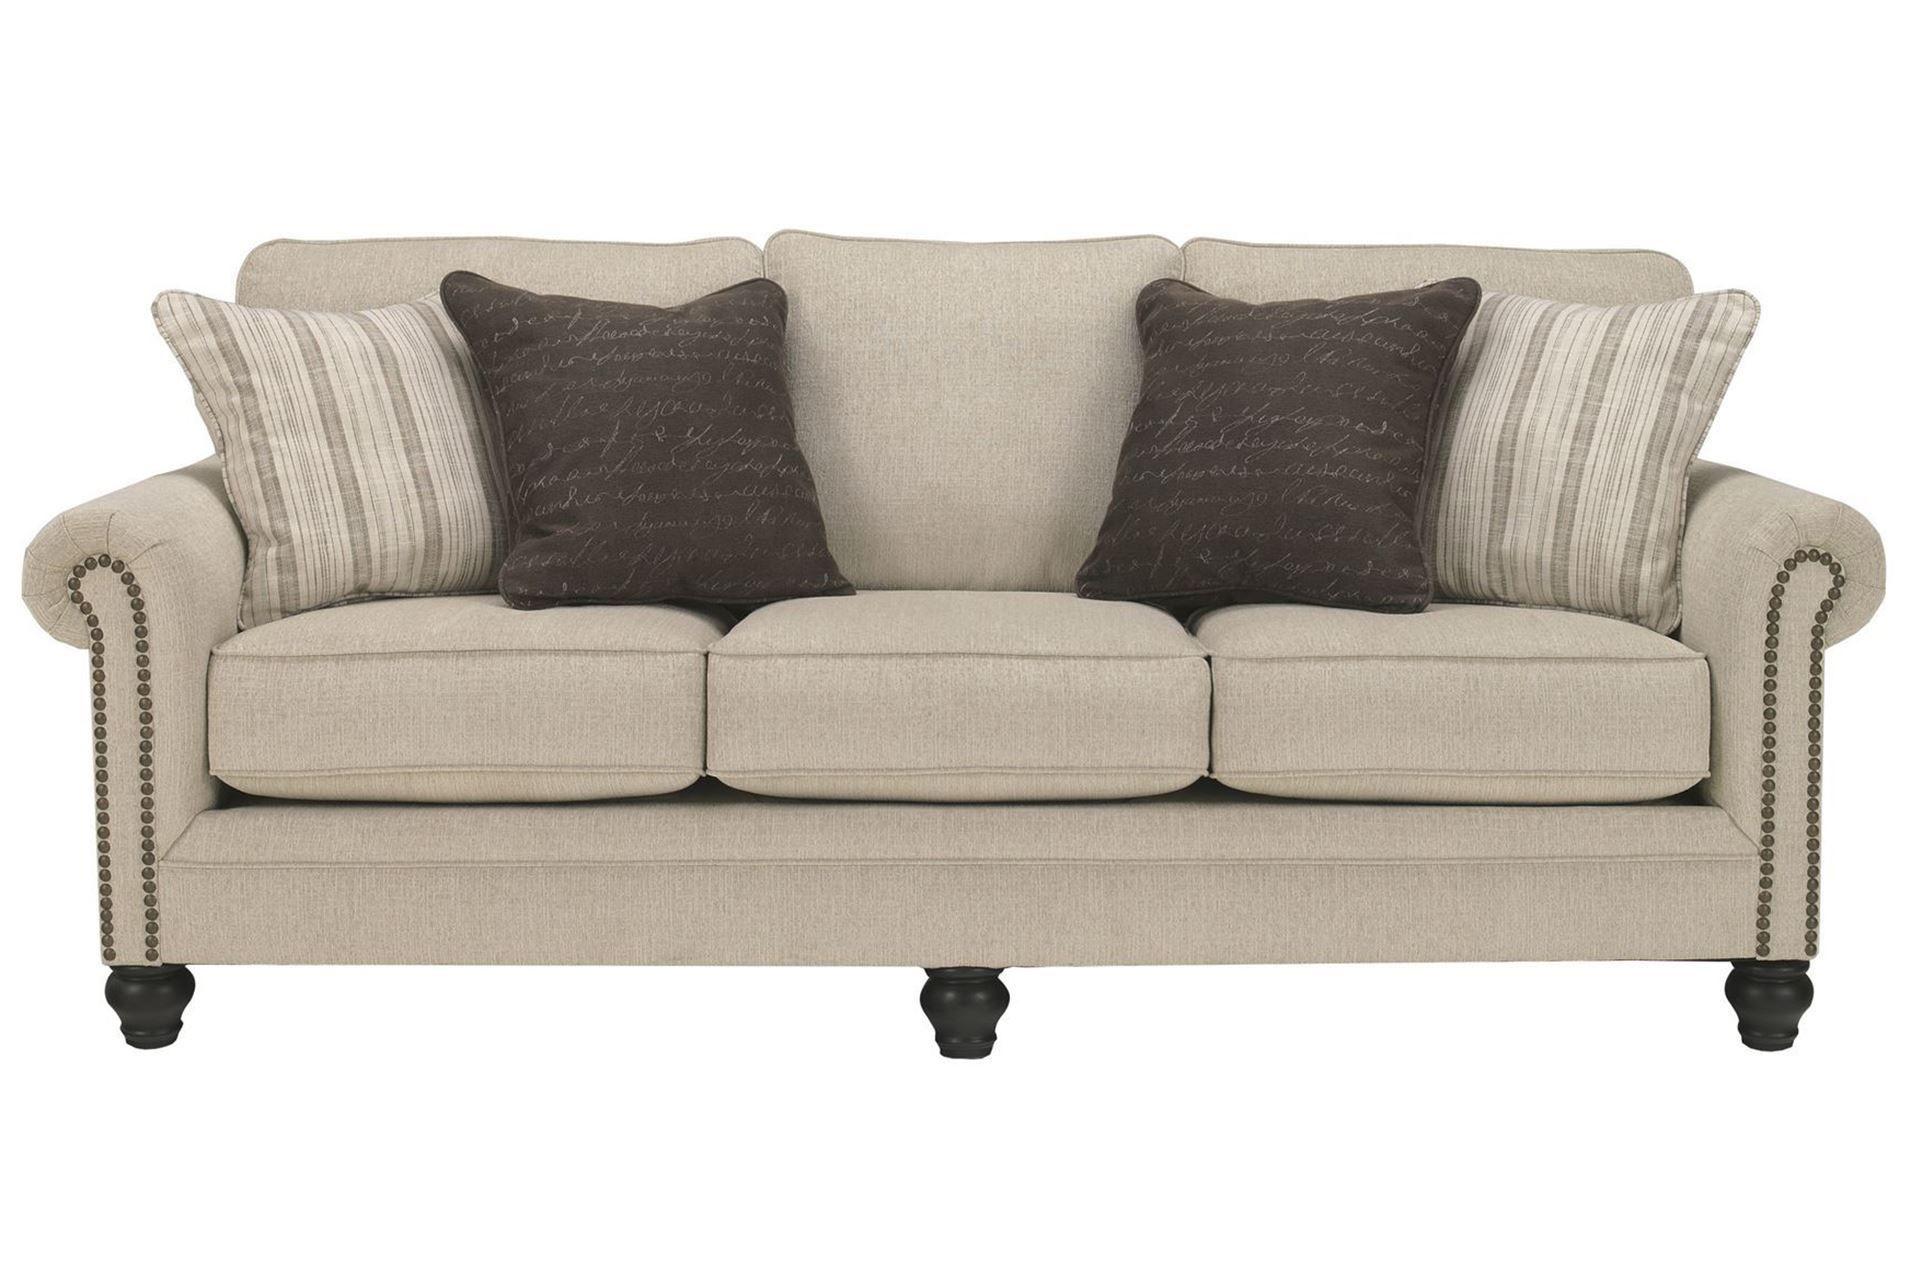 milari linen queen sofa sleeper for the playroom option could pop rh pinterest com